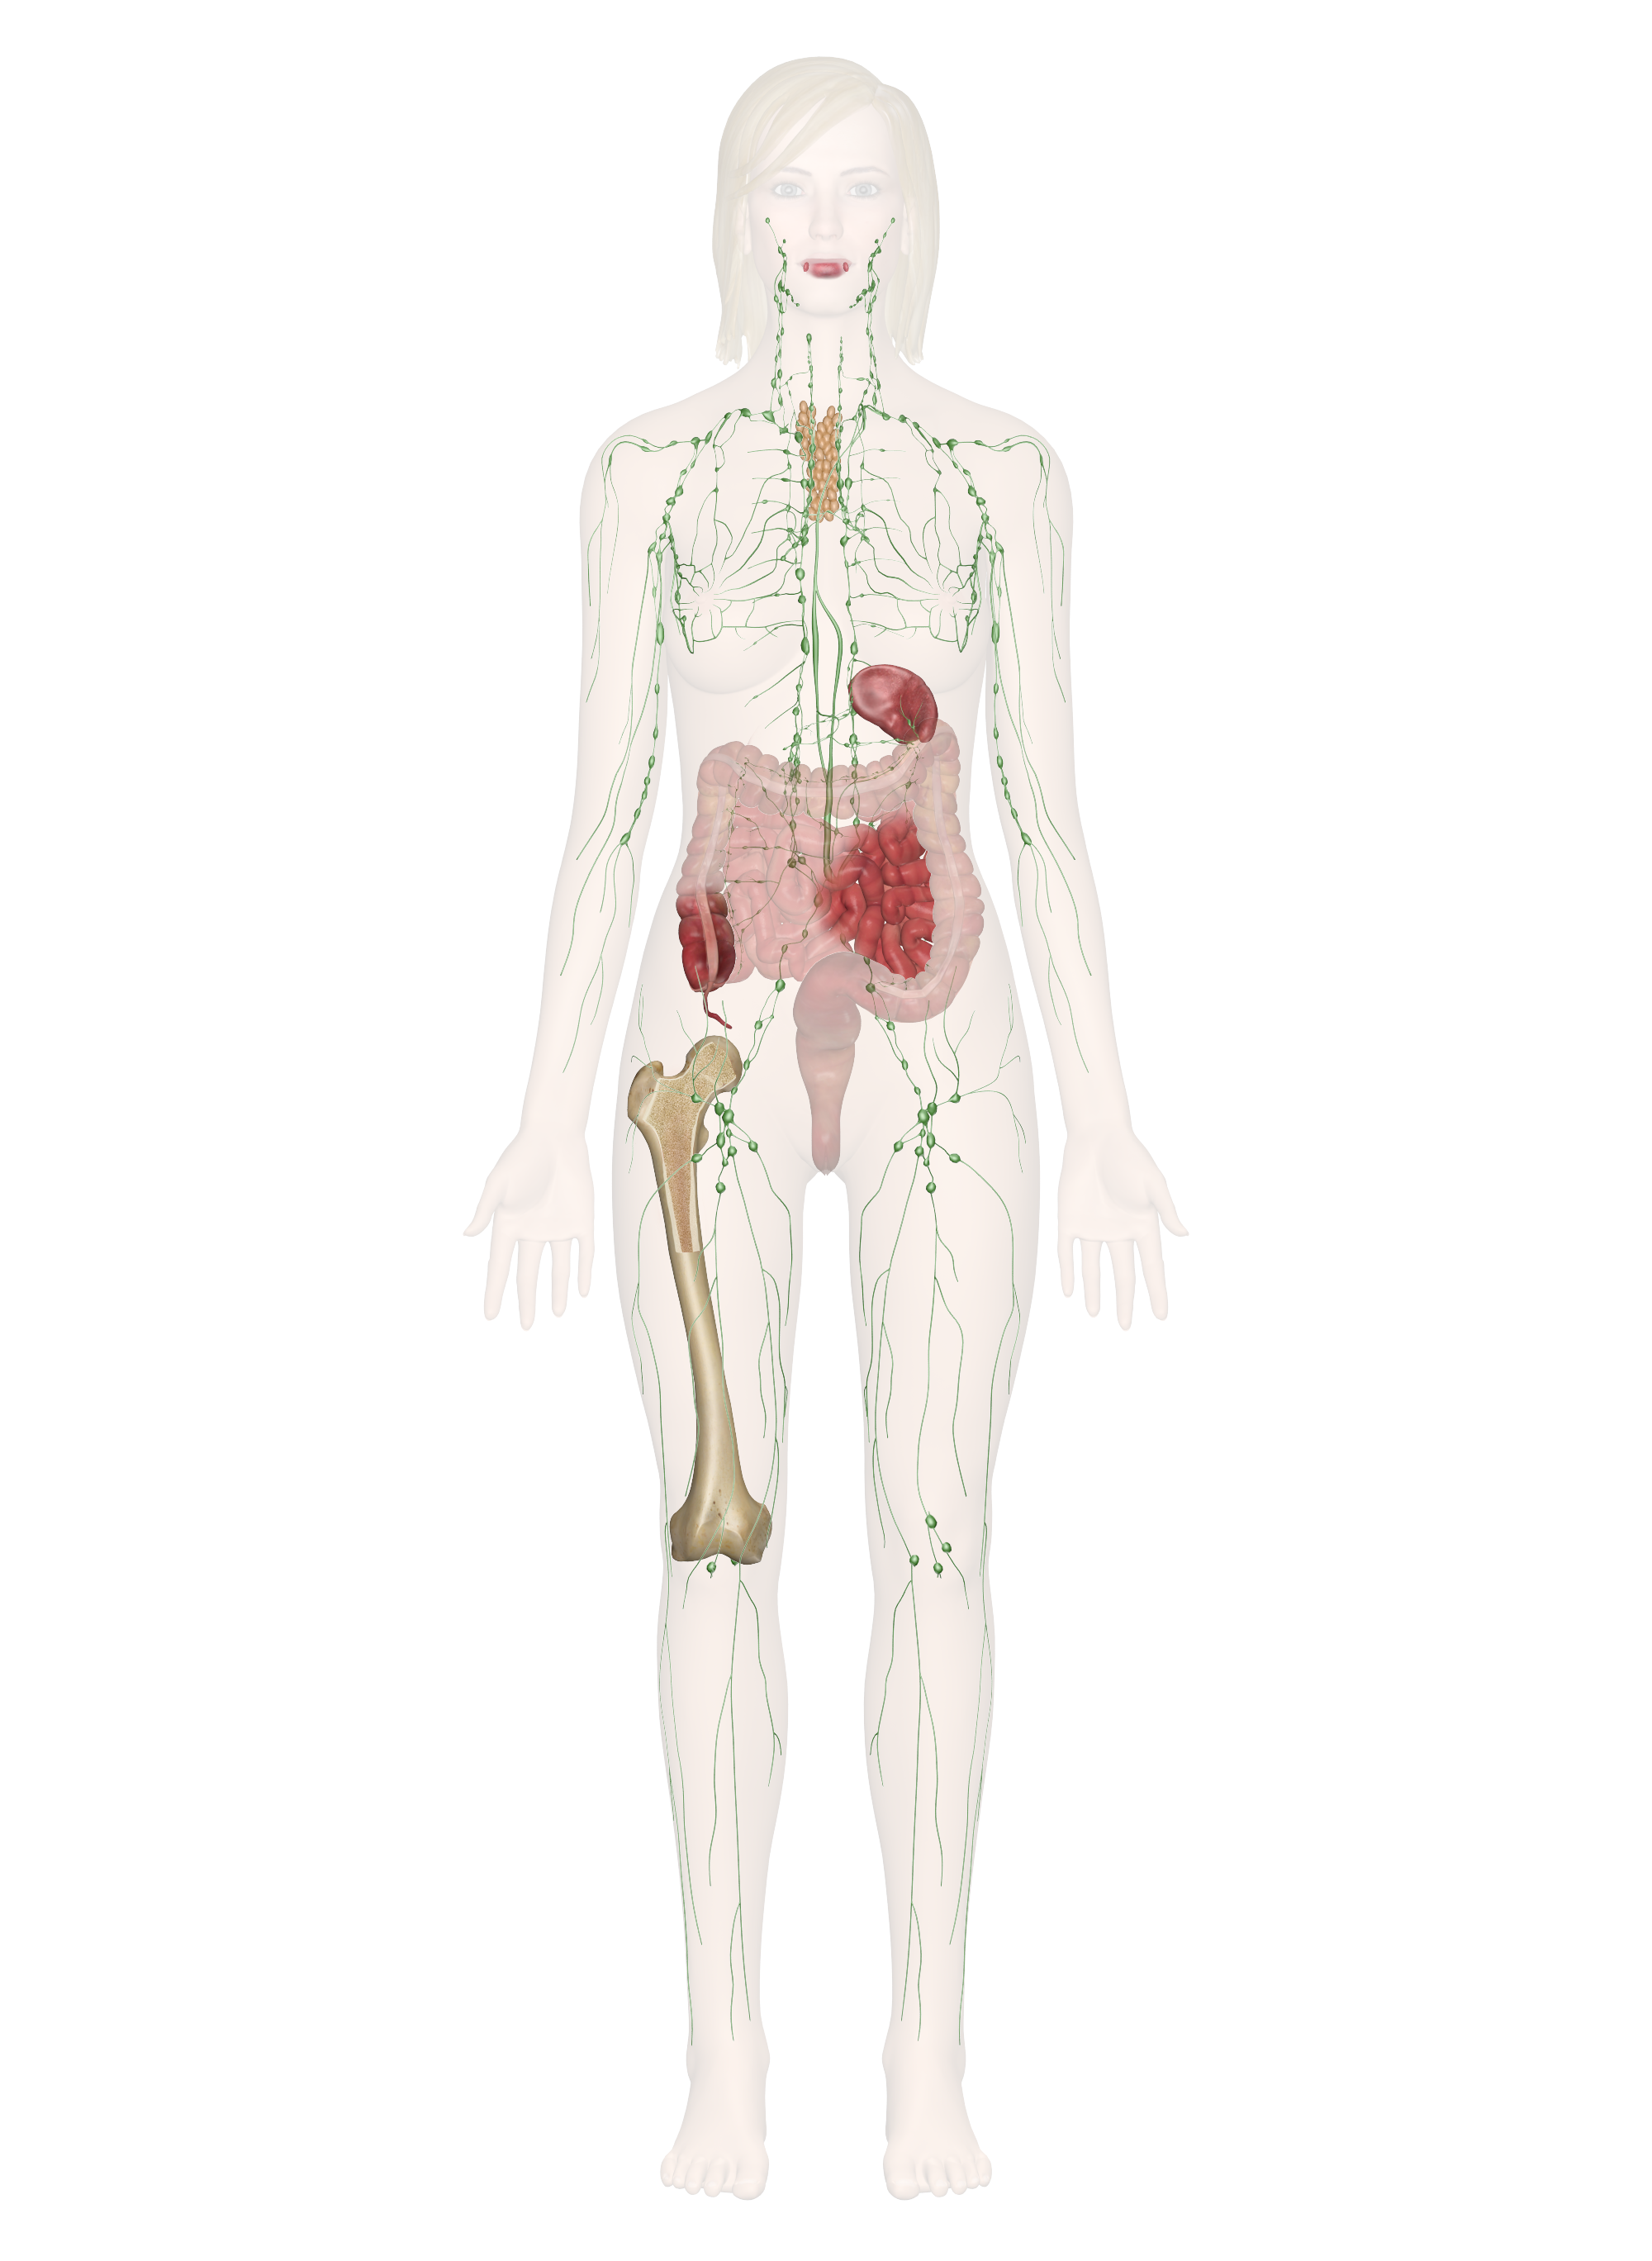 Immune And Lymphatic Systems Anatomy Pictures And